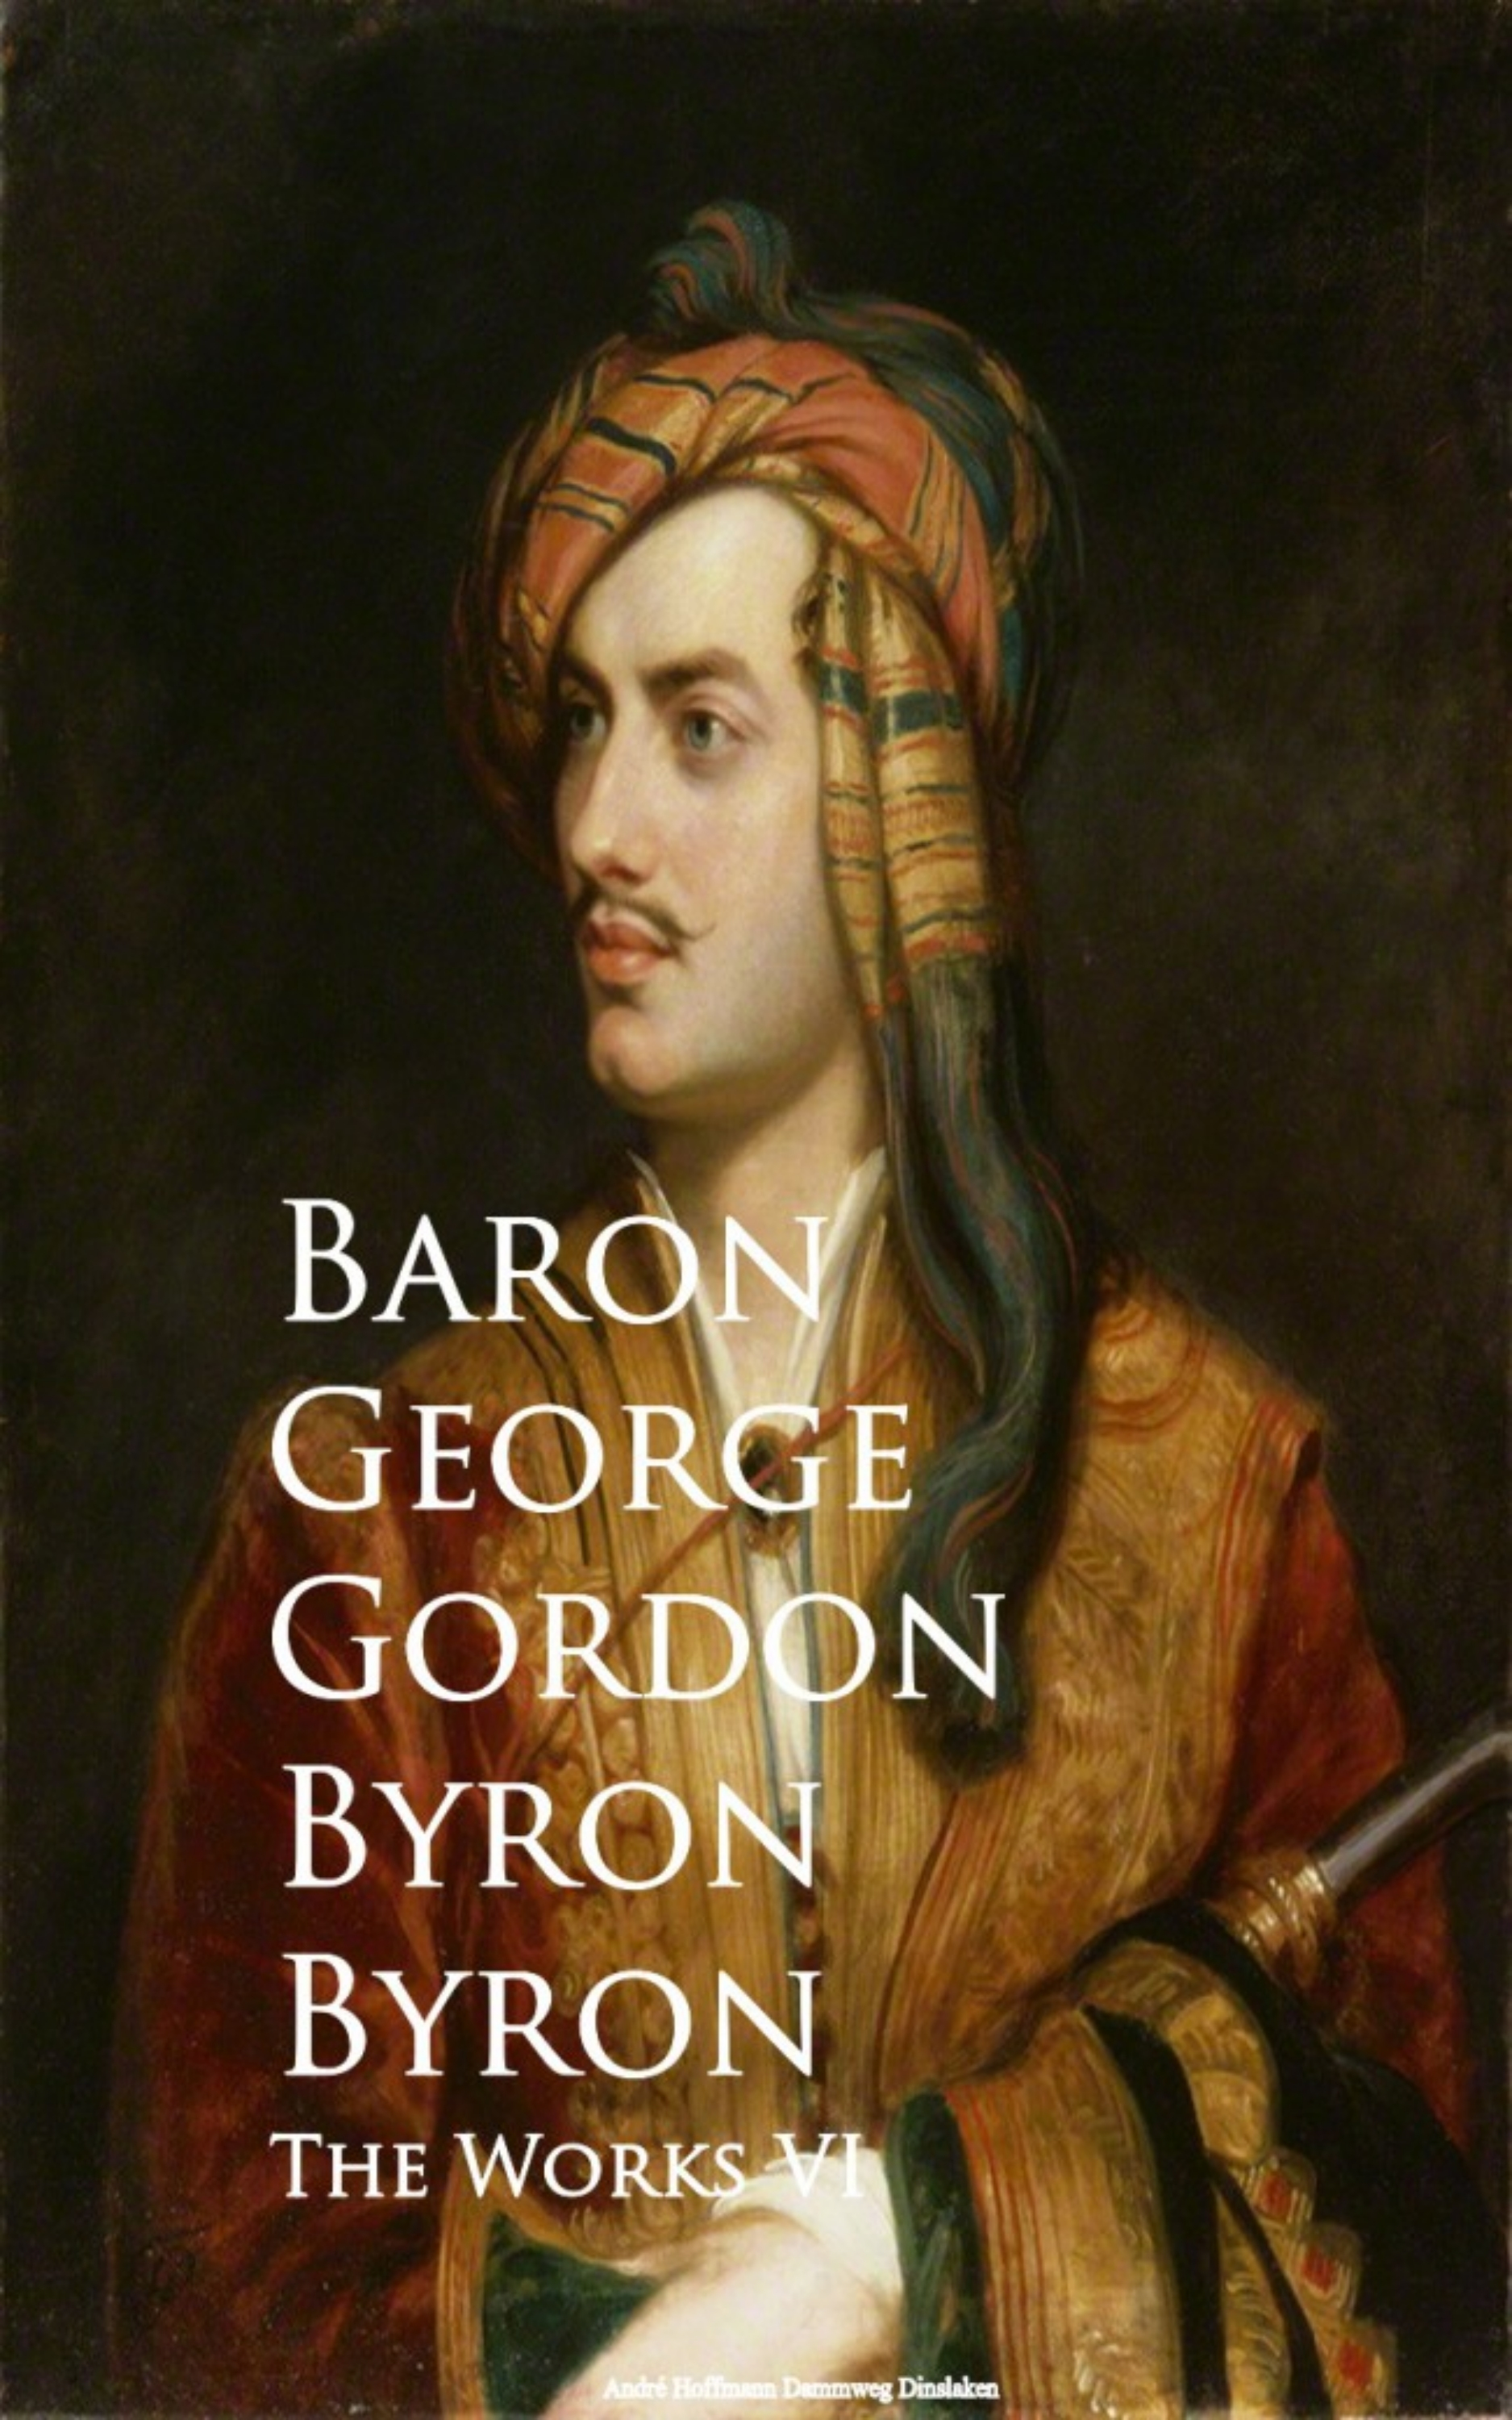 Baron George Gordon Byron The Works VI george gordon byron childe harold s pilgrimage canto the third